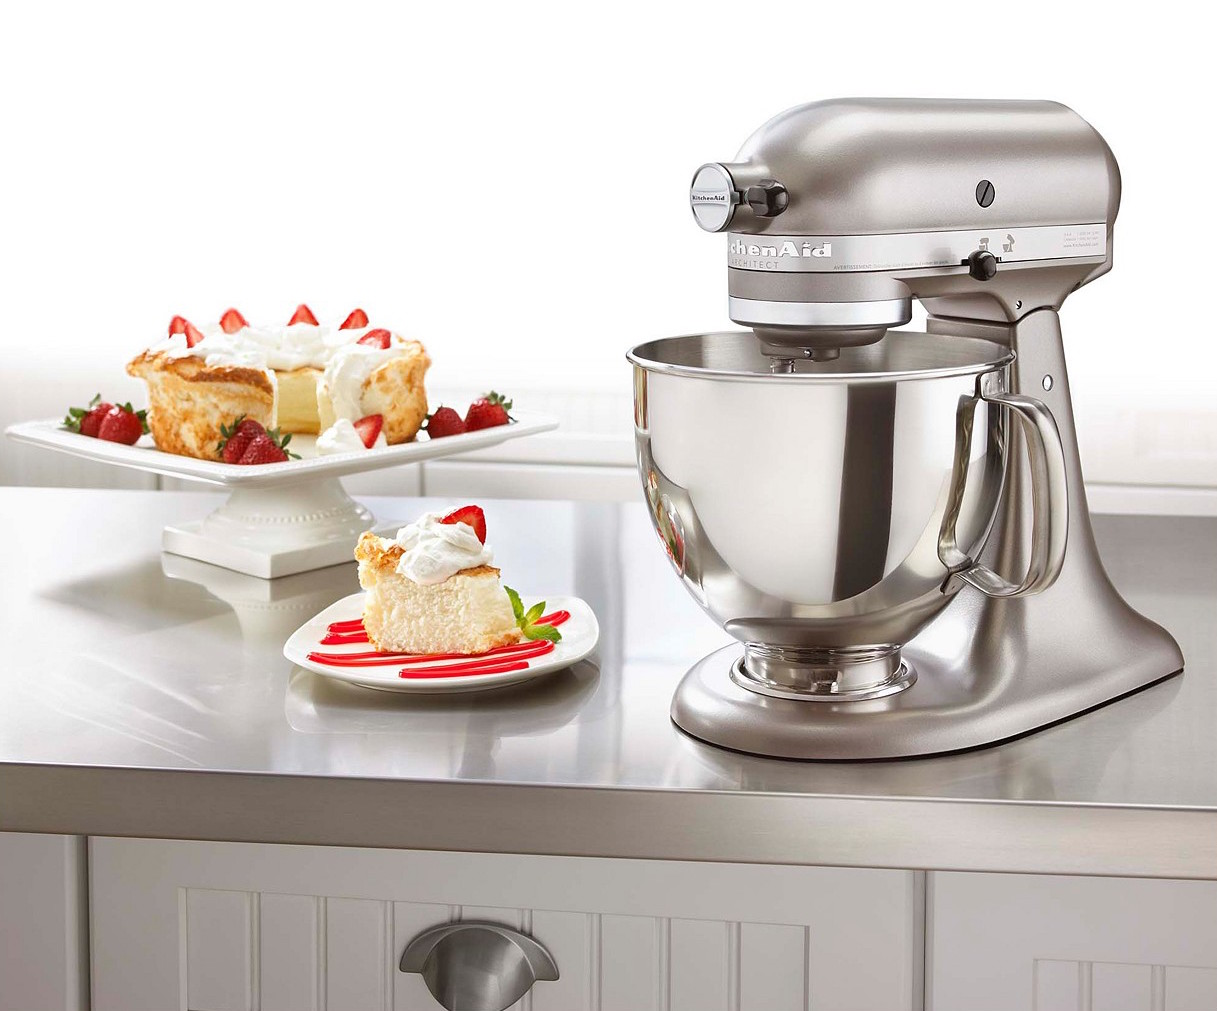 Cocoa Silver KitchenAid mixer with strawberry shortcake.